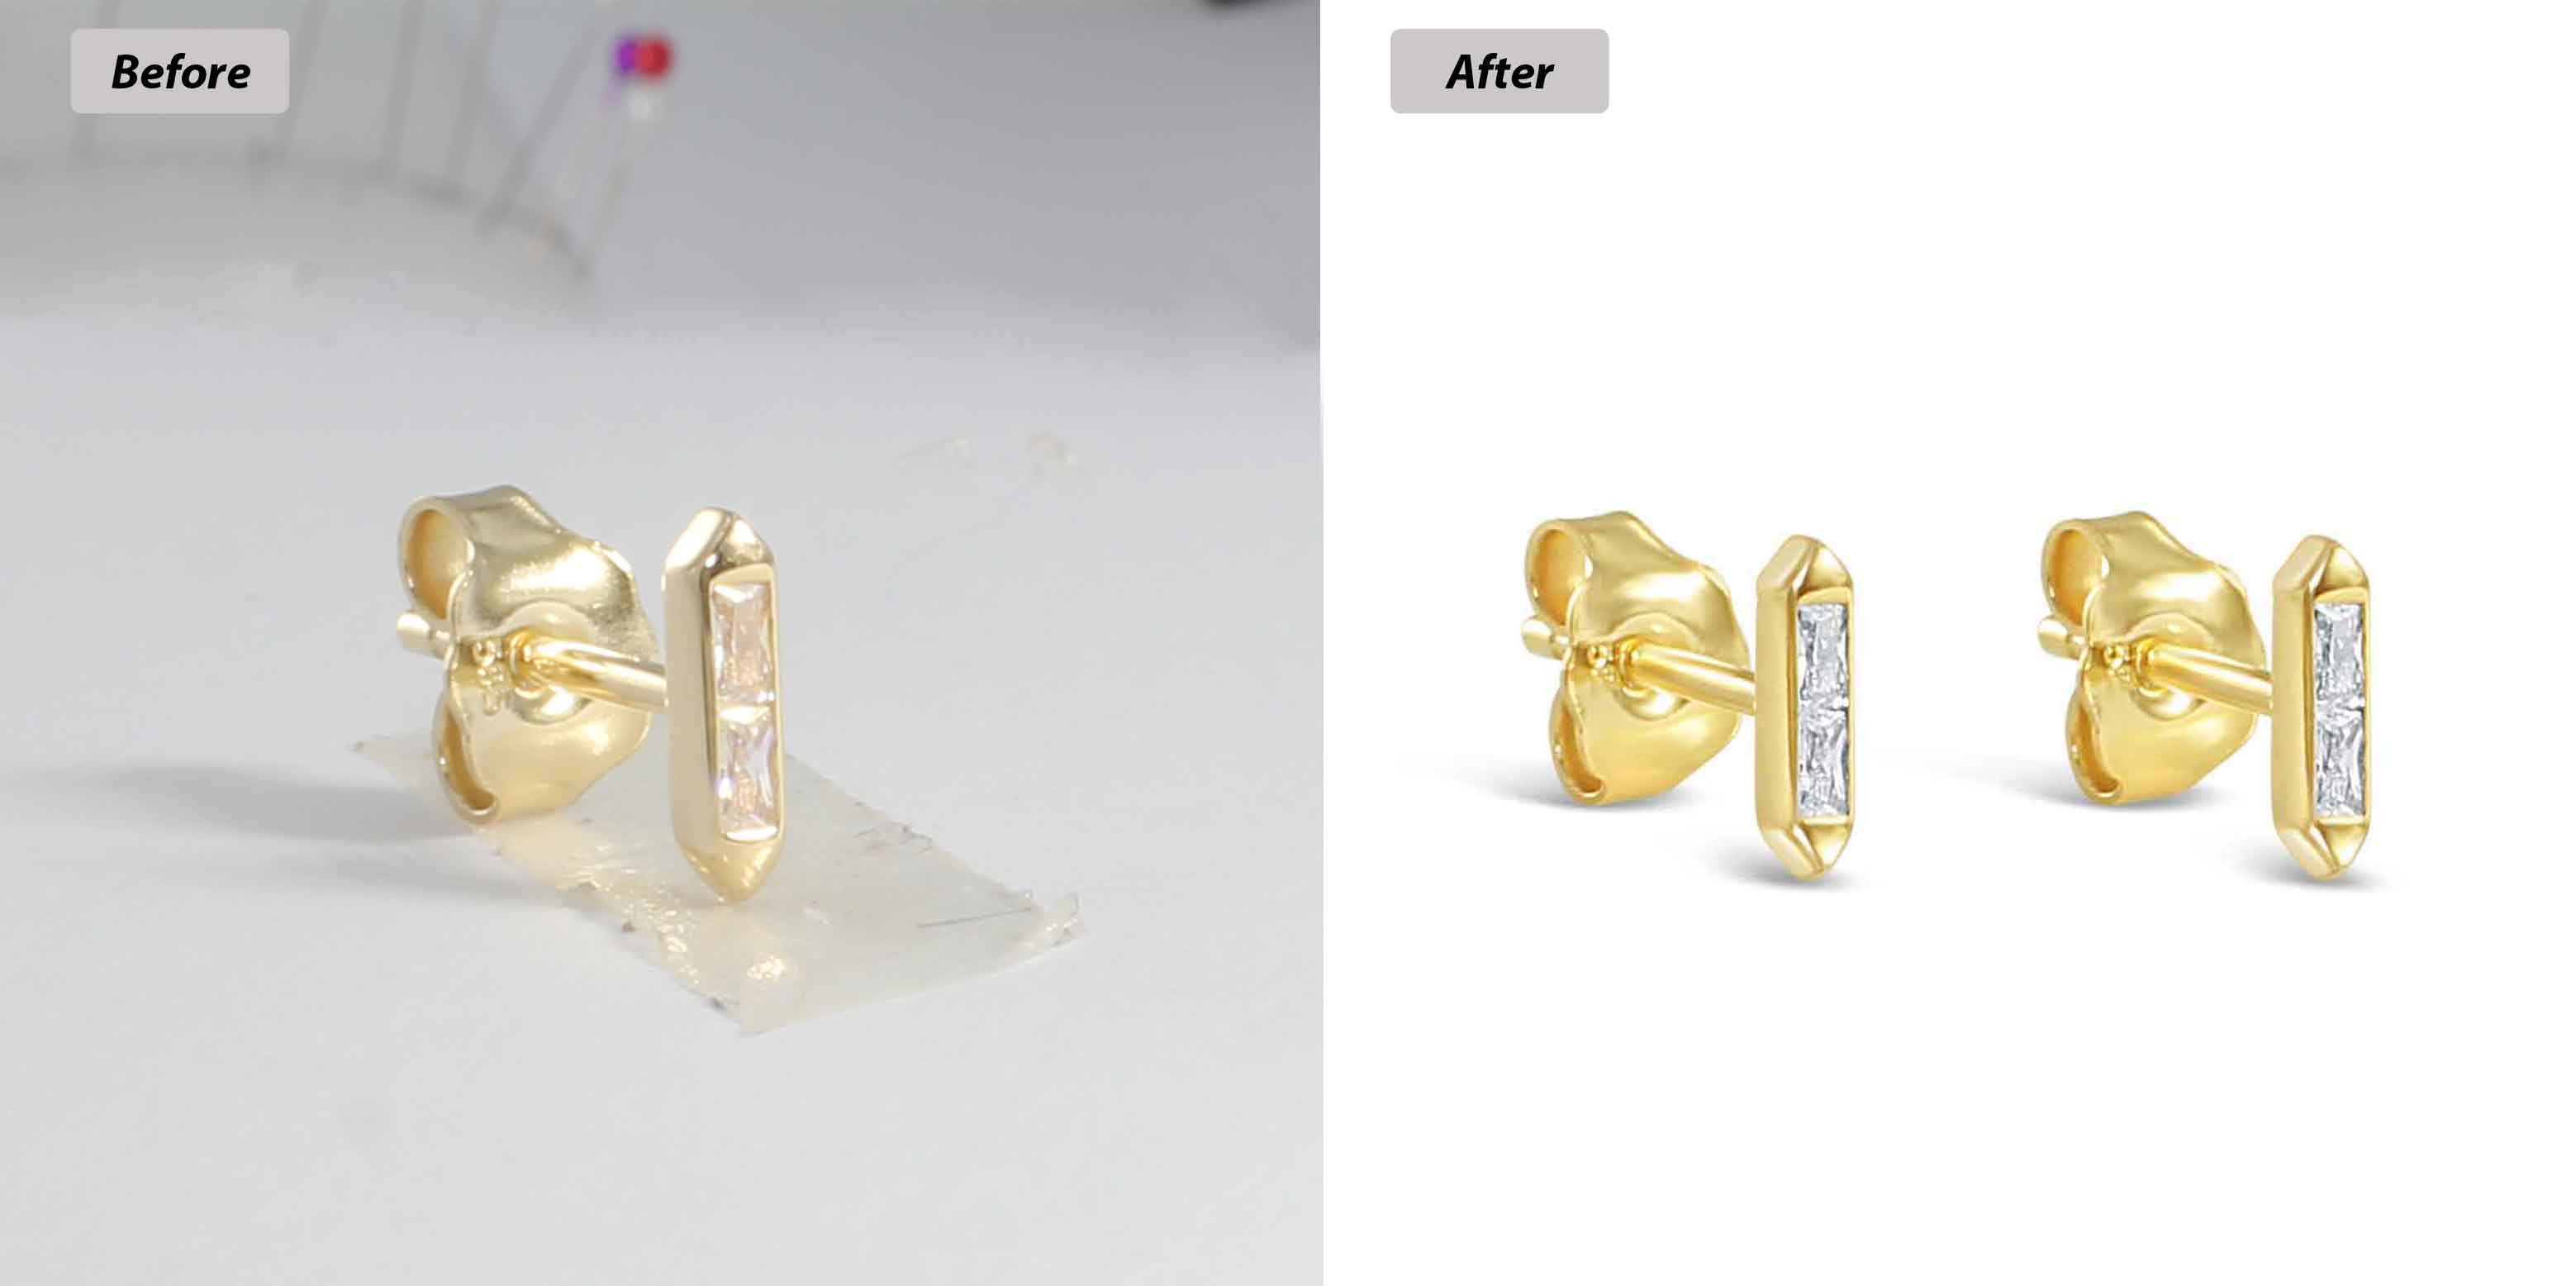 Clipping Charm_Jewellery retouch 0951